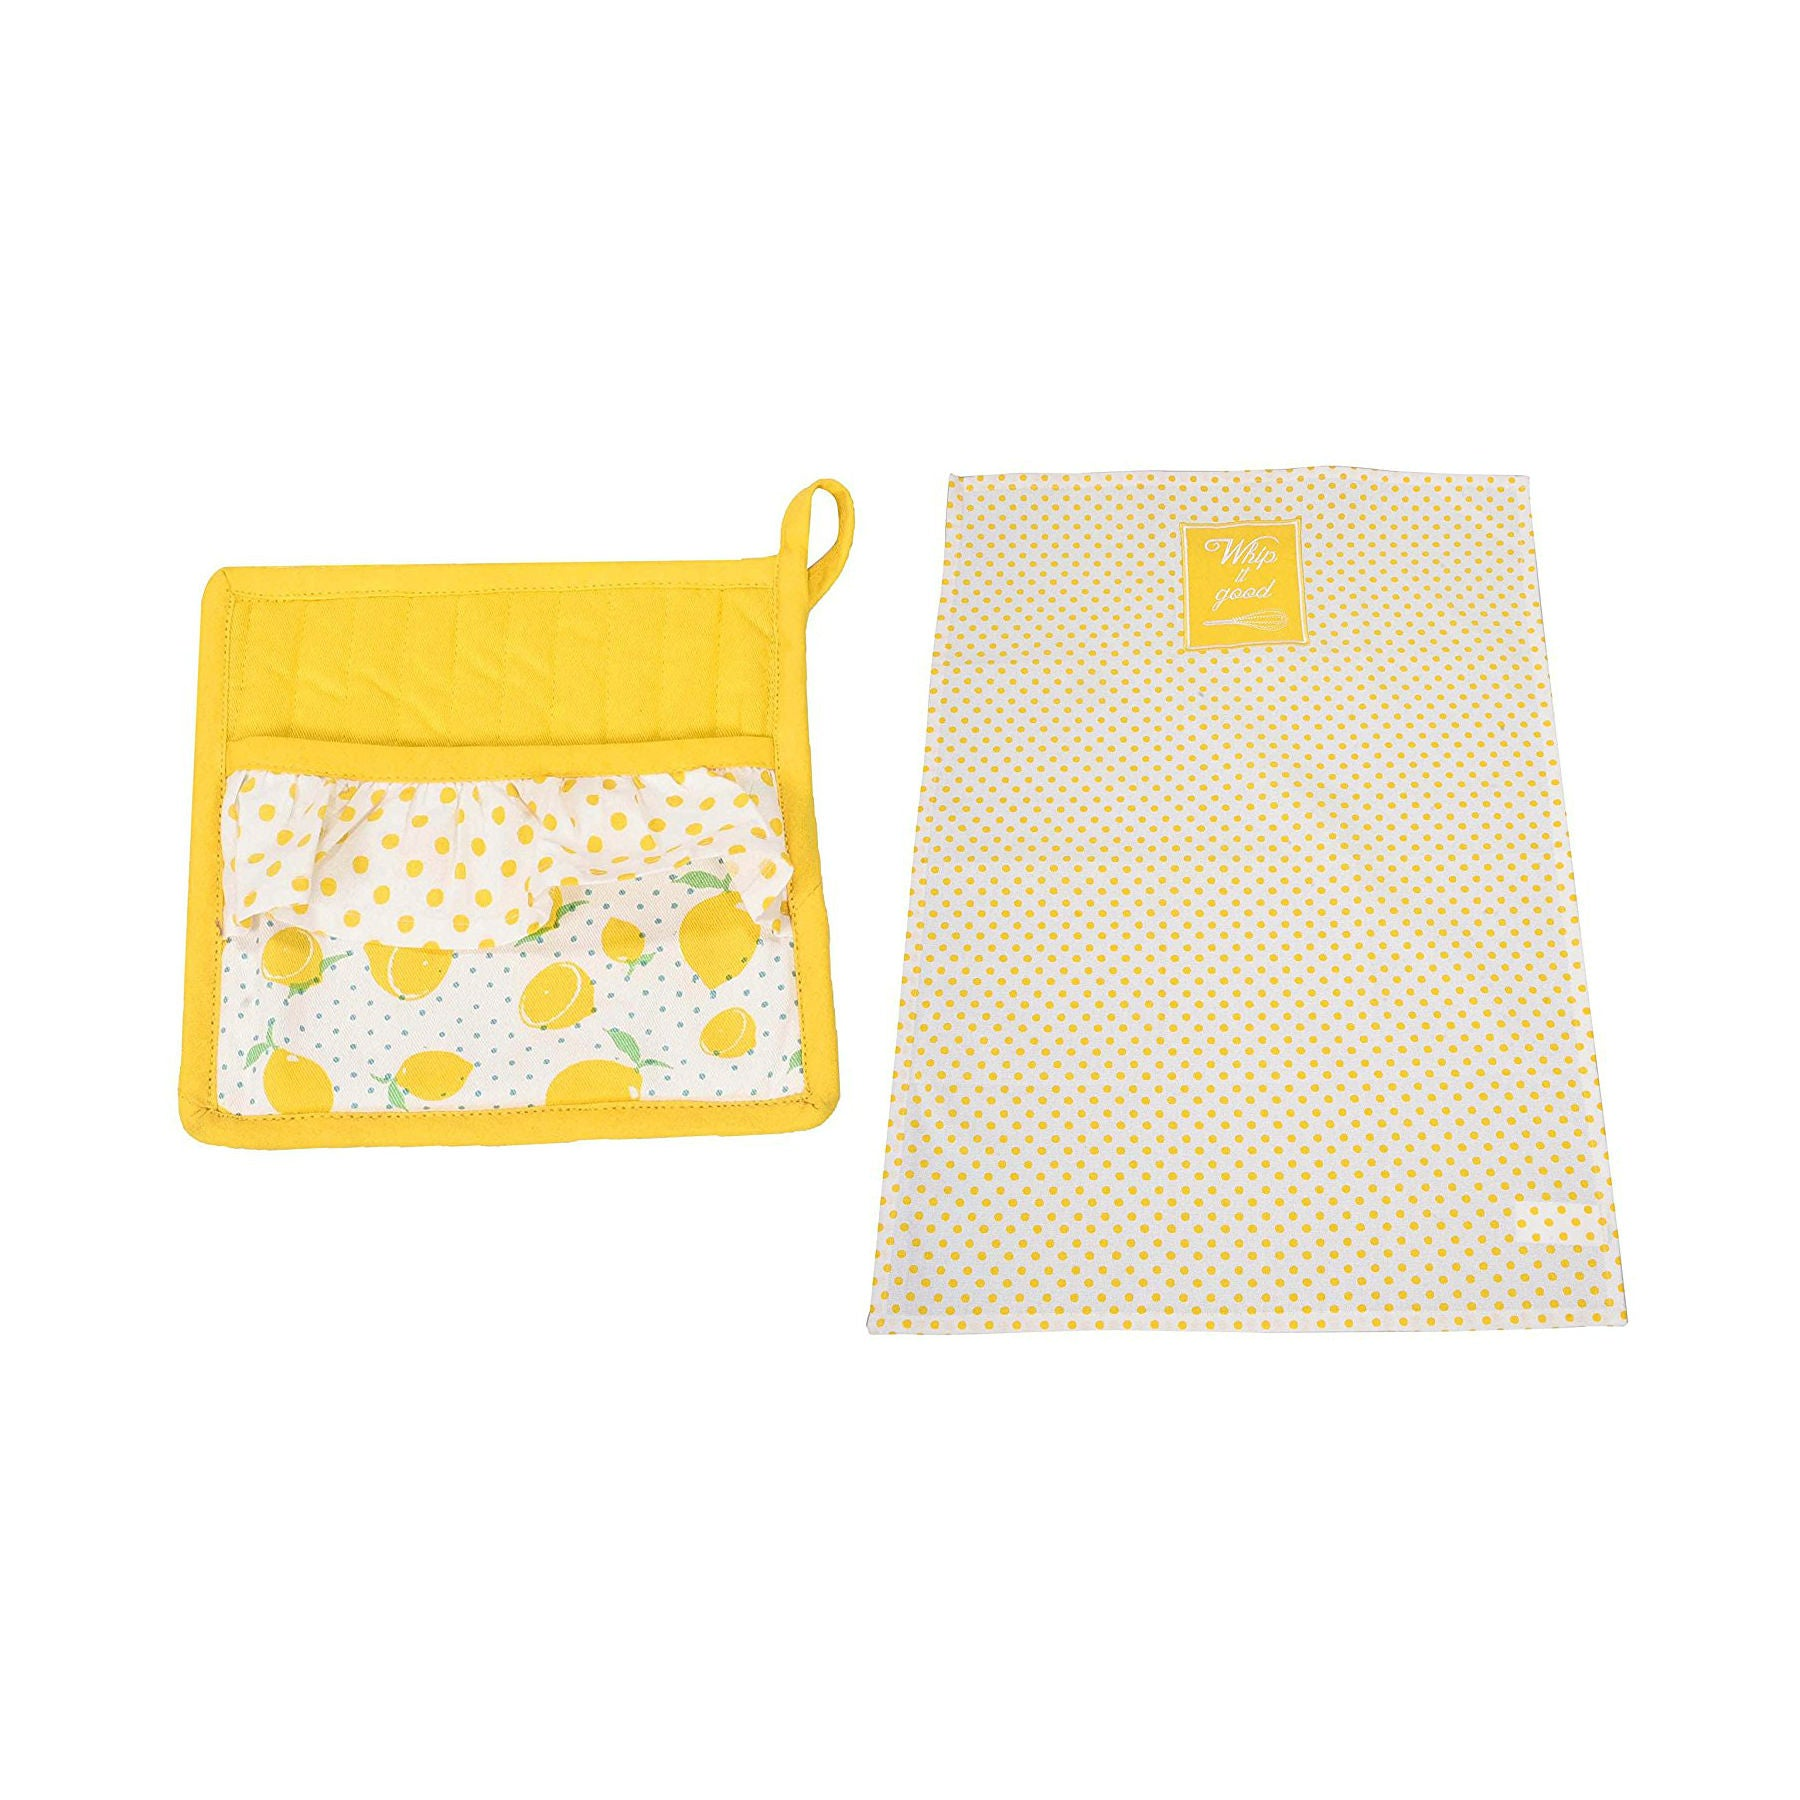 2 Piece Cotton Plate Holder and Wipe Cloth Set 1 BHK Interiors